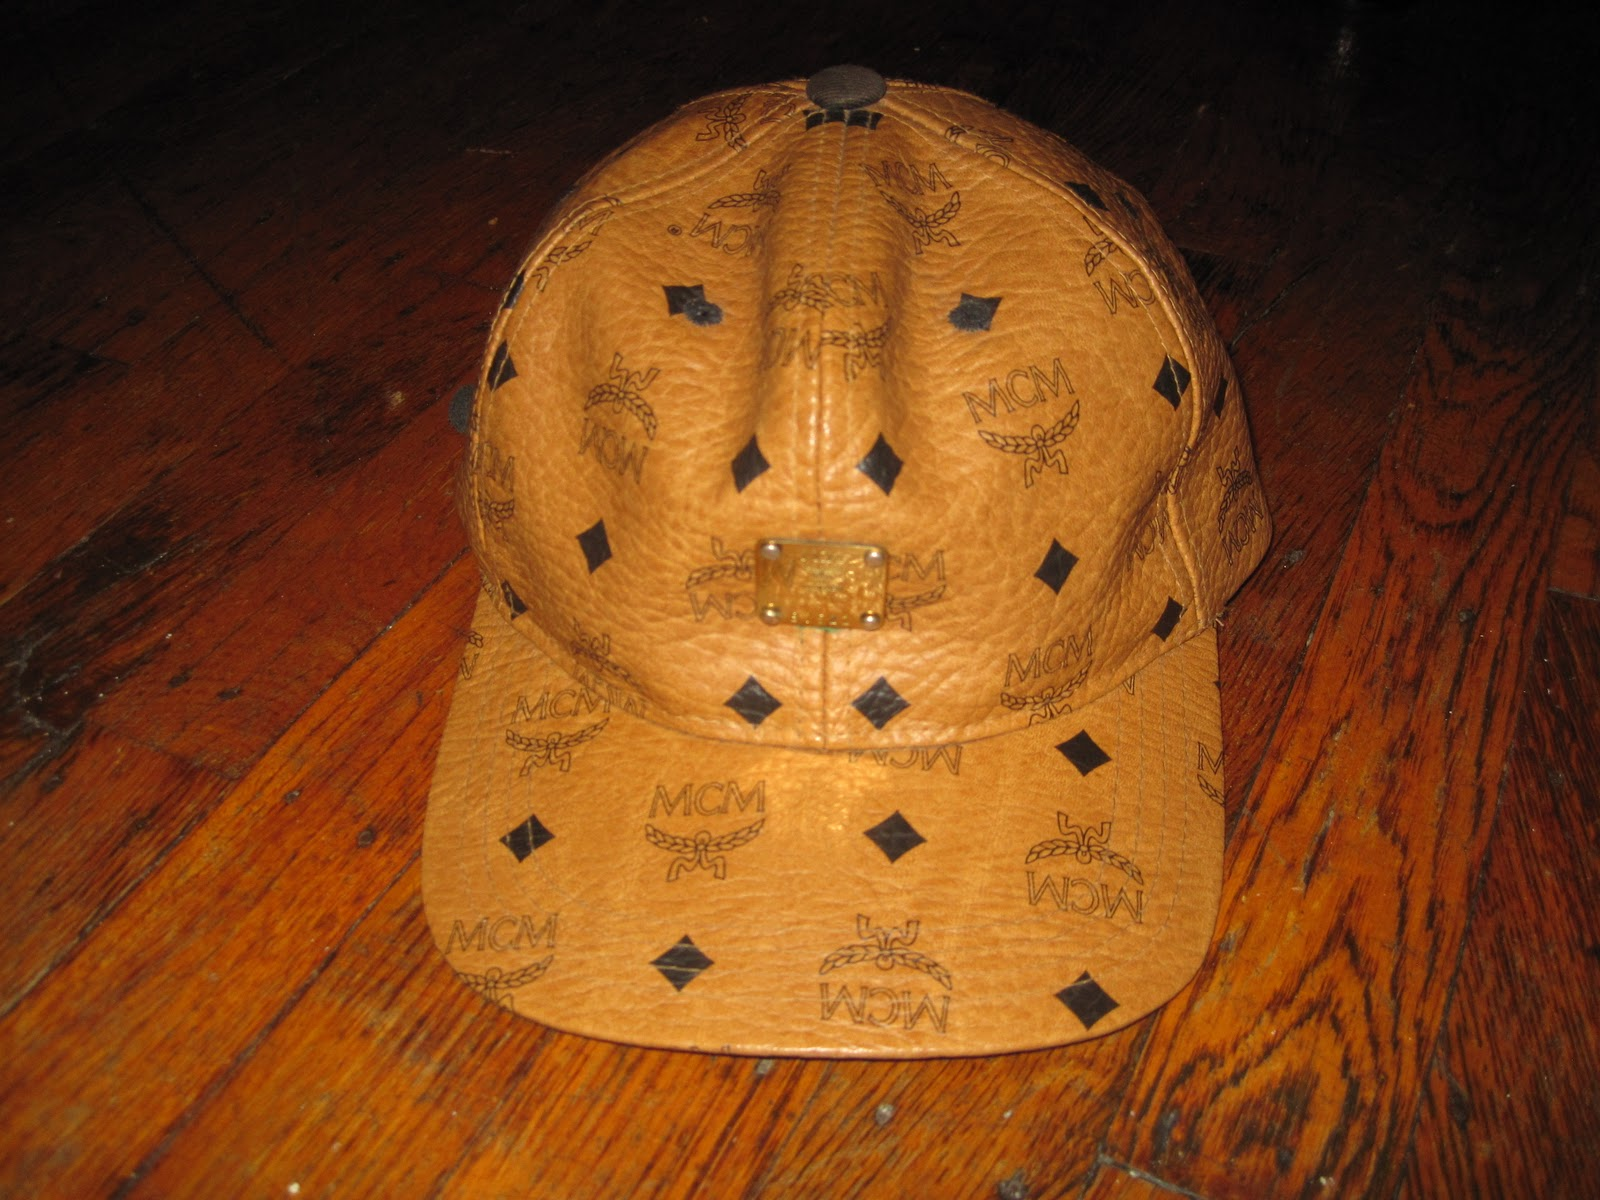 ... spain mcm hats aaaleather 001 mcm very rare hat a9644 7cf3a 55a539ba30c8